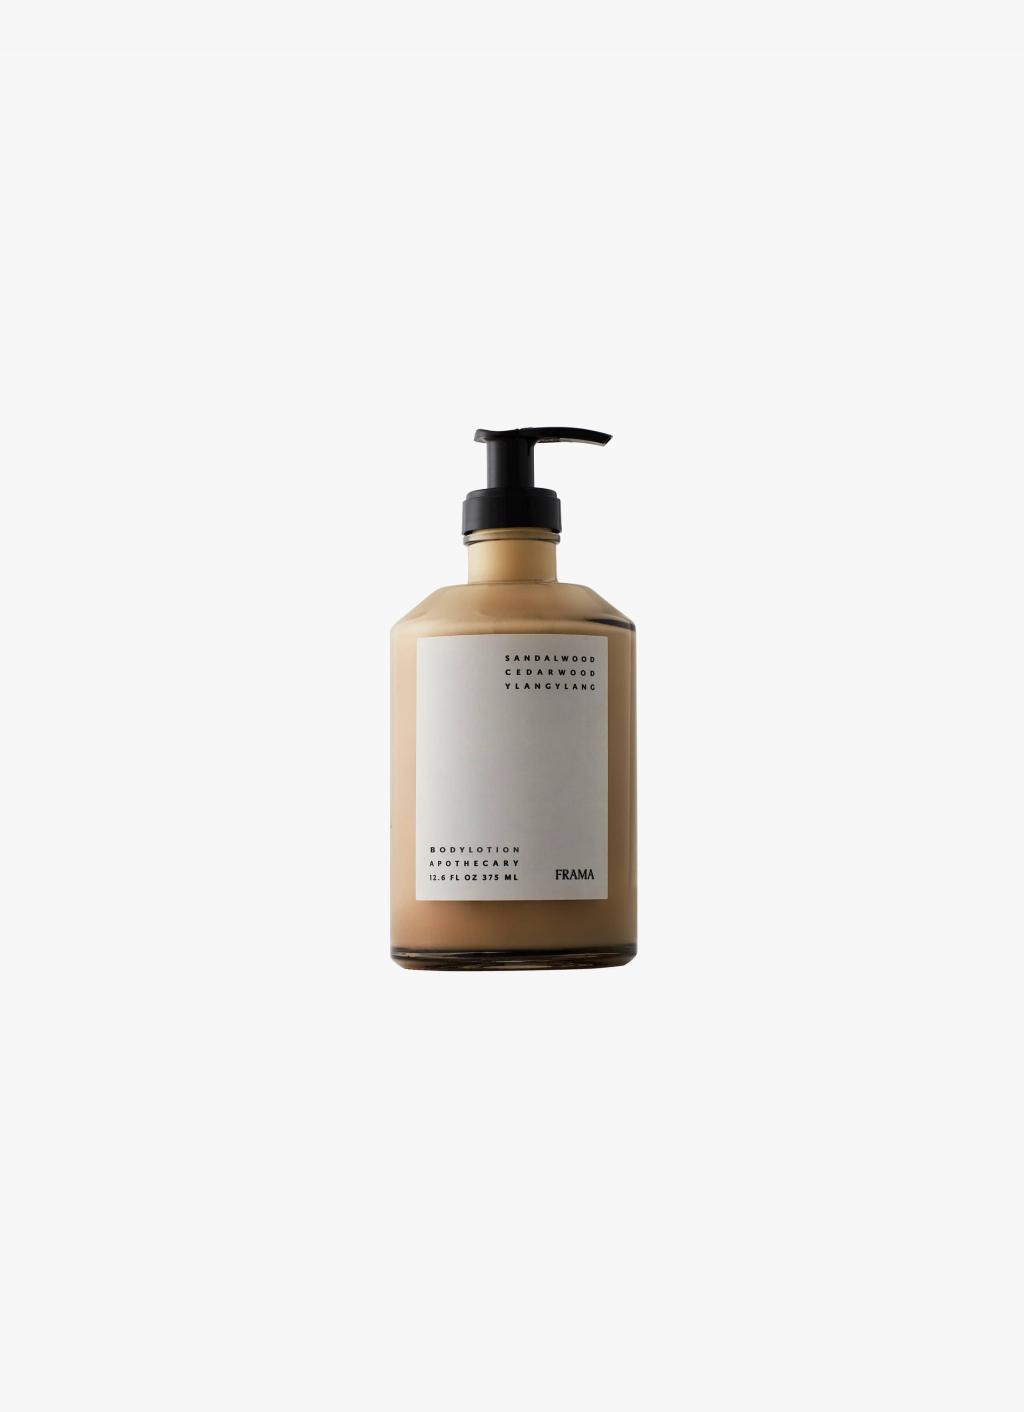 Frama - Apothecary - Body Lotion - 375ml